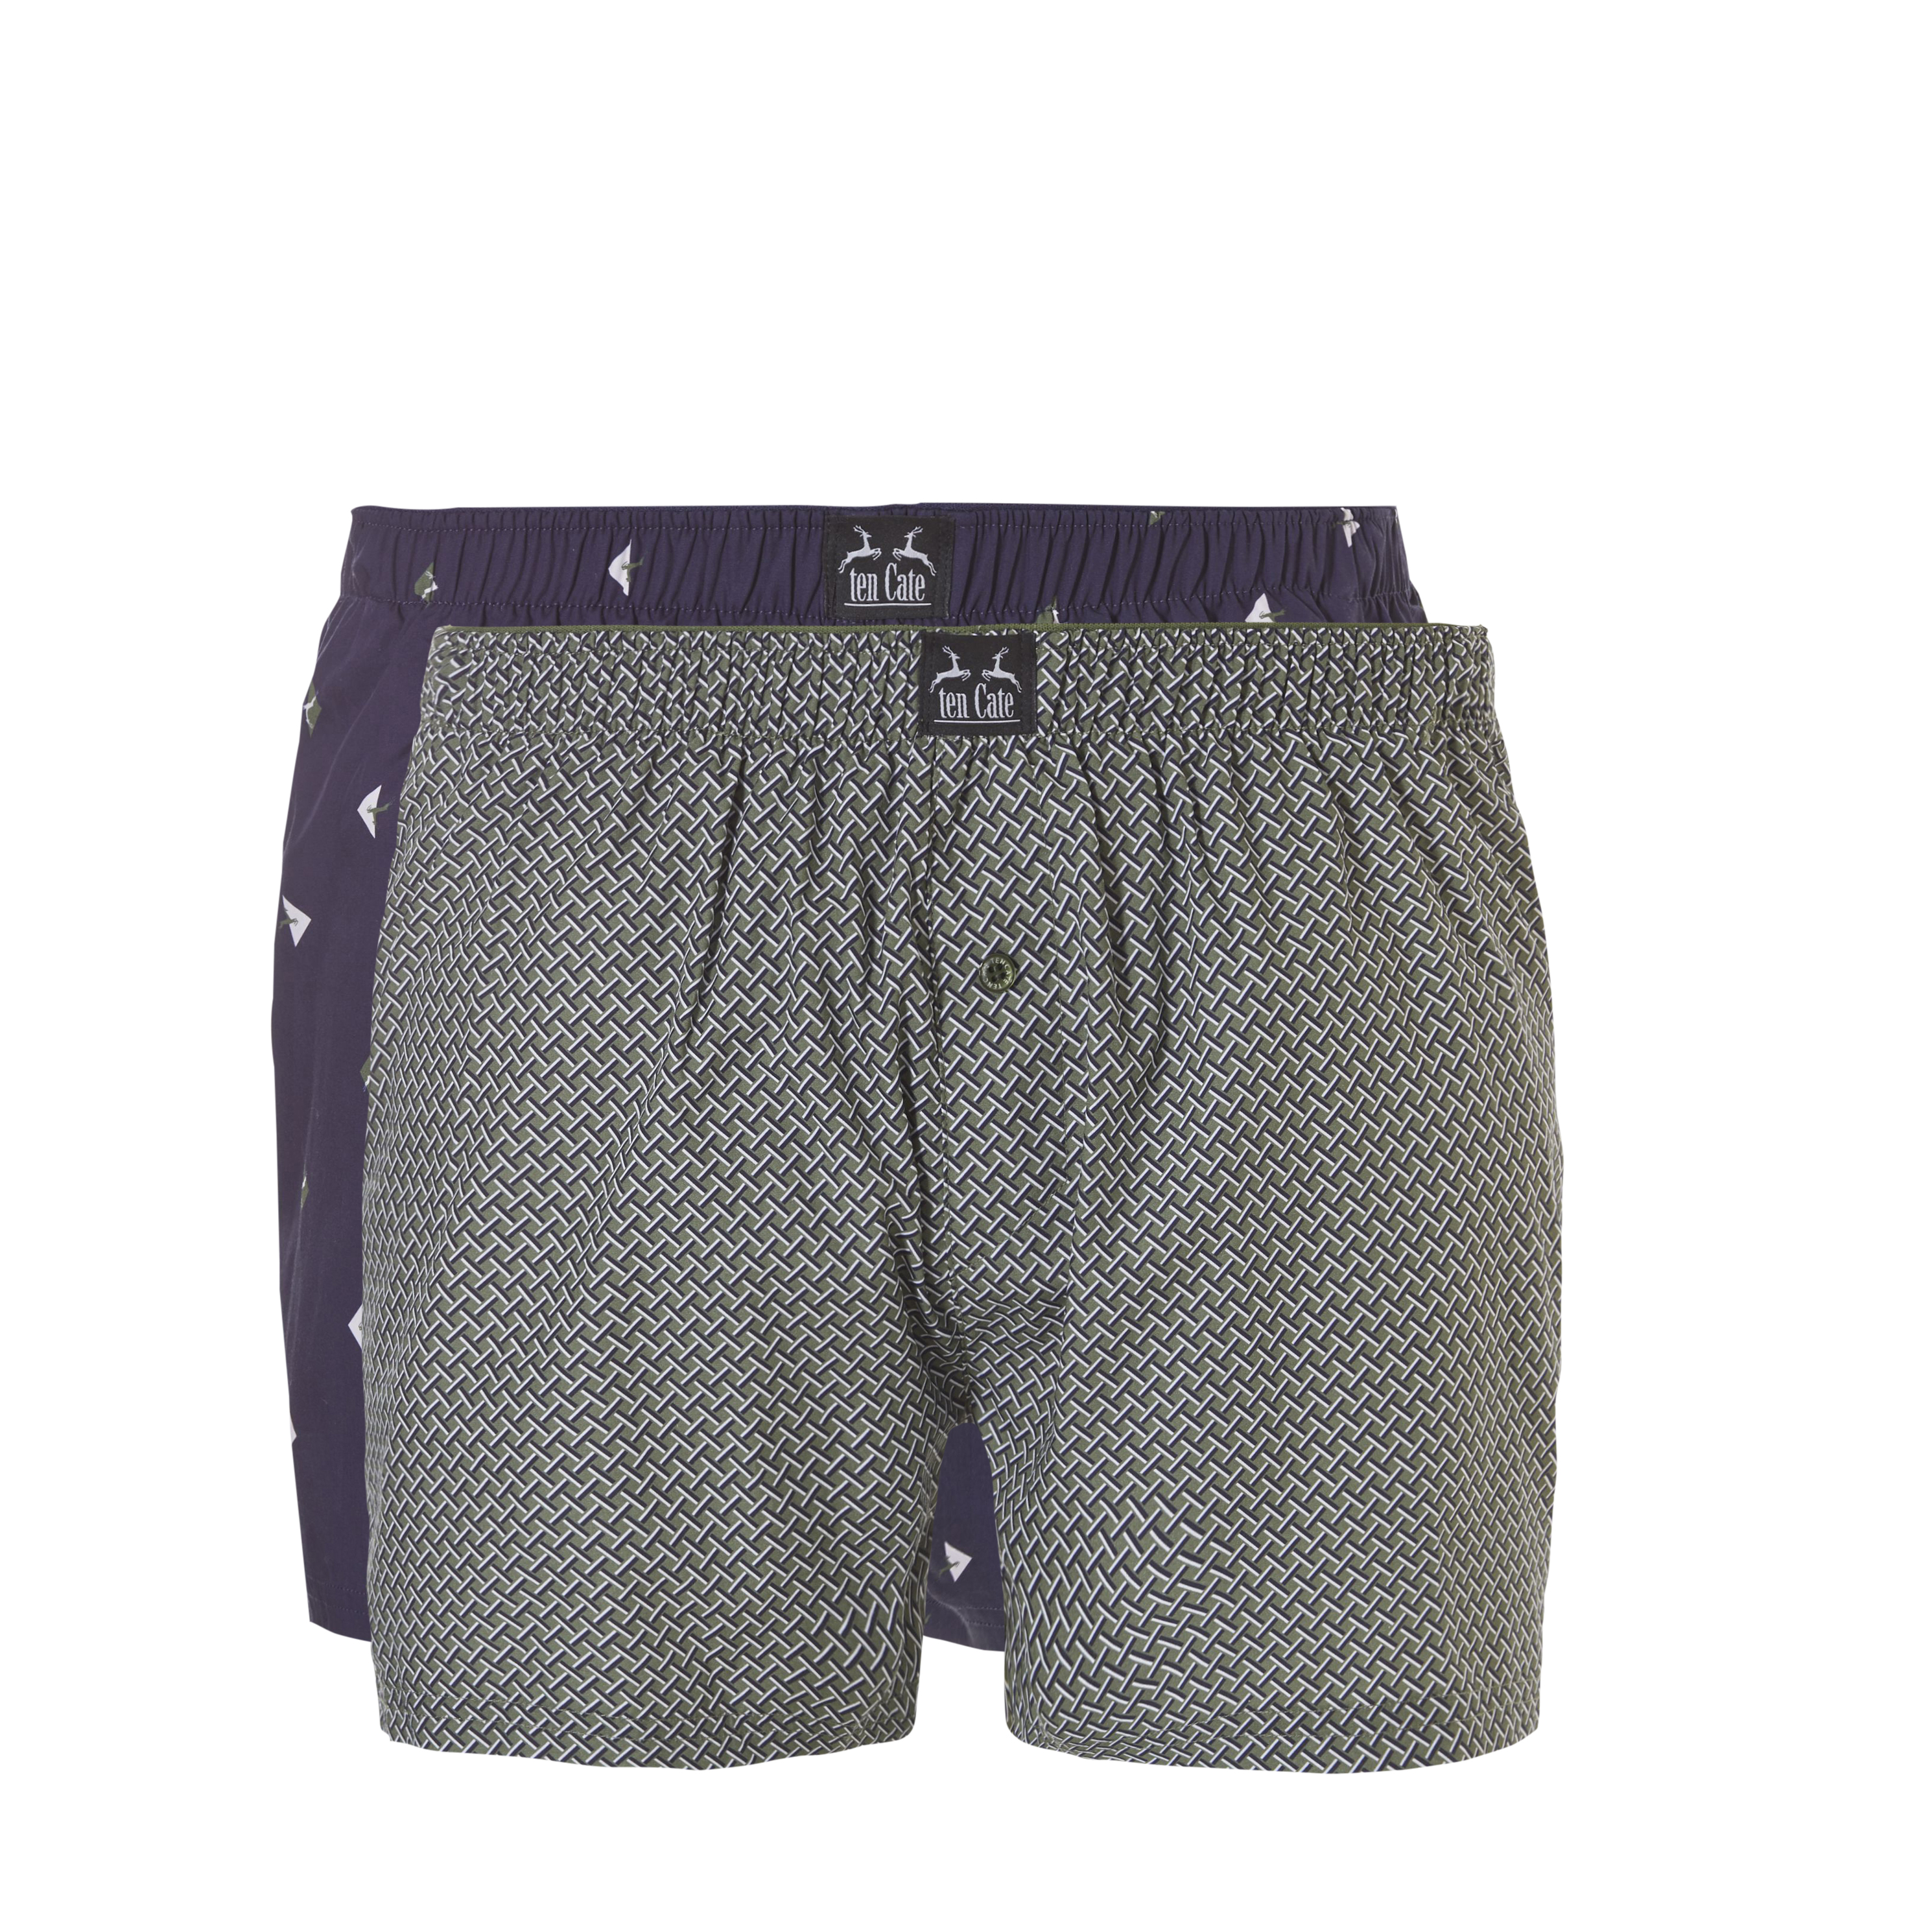 Ten Cate Woven Boxershorts 2-Pack Navy Triangle/Green Weave-M